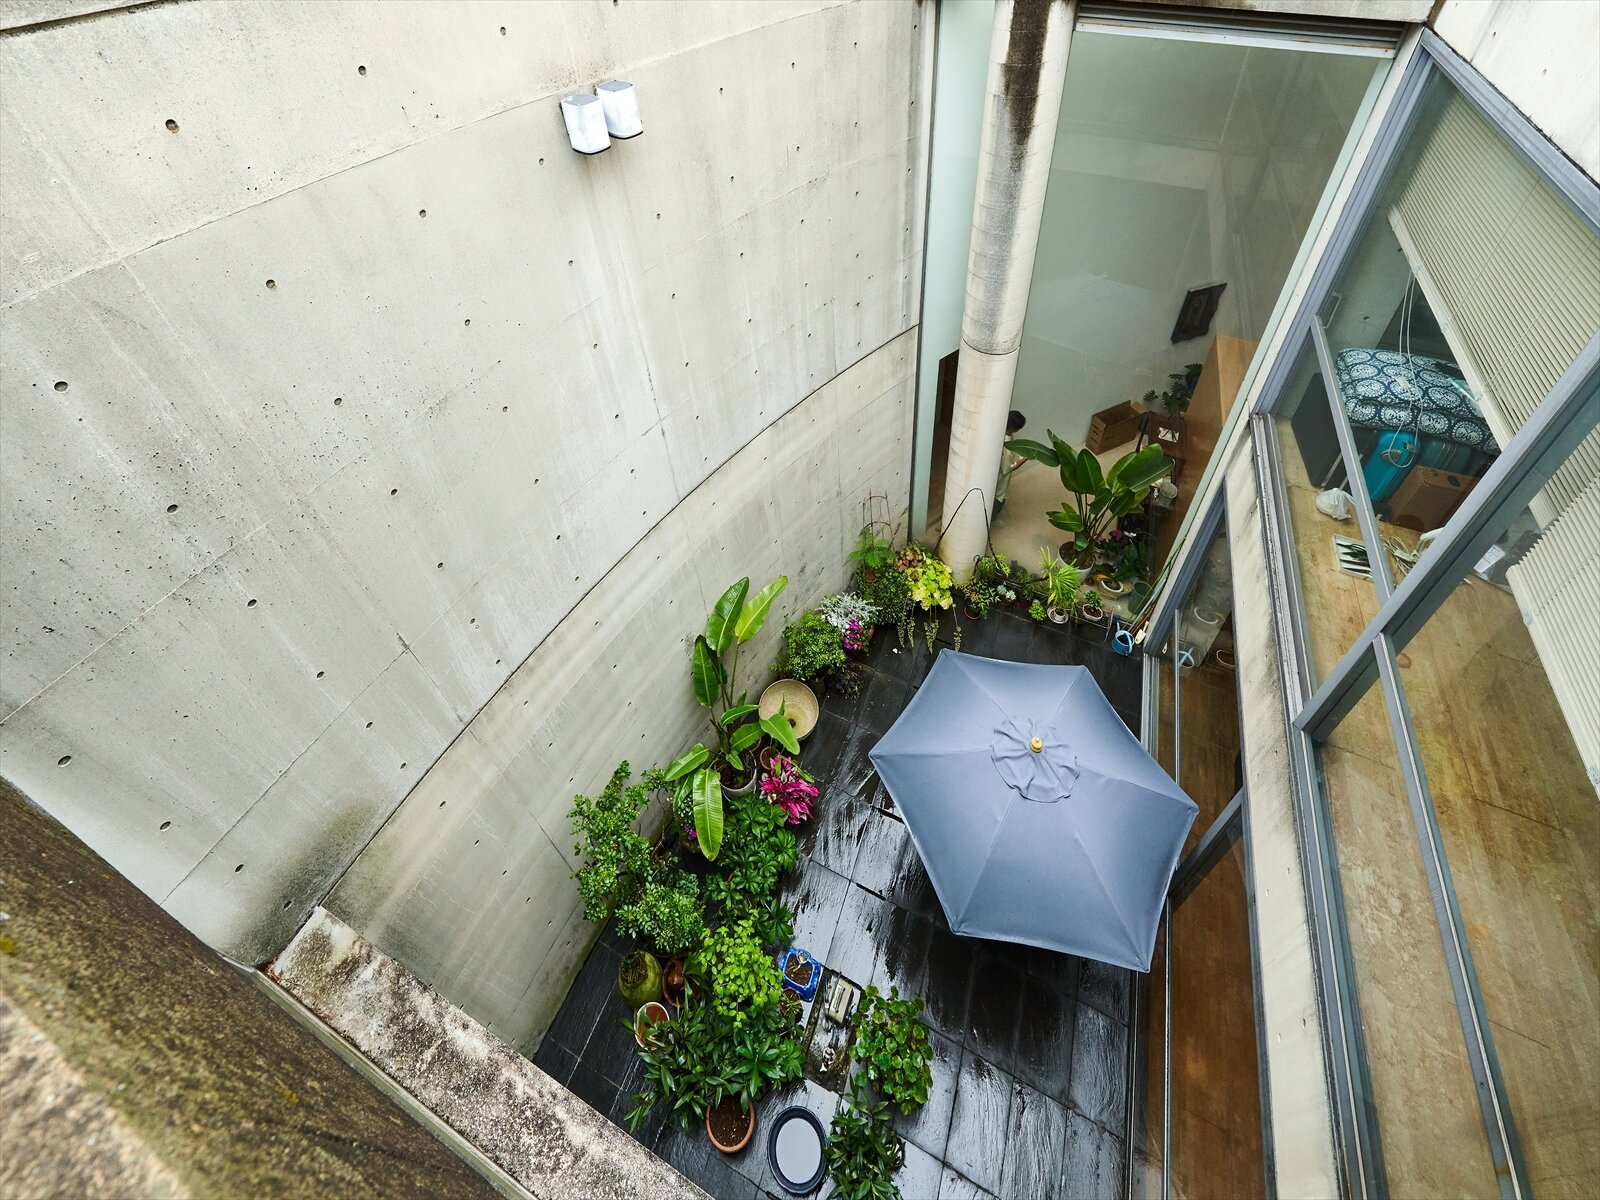 The nearly 5,500-square-foot structure includes three multi-floor units positioned between several courtyard gardens. The overall plan is also based on a series of overlapping arcs and rectangular spaces that create specific relationships with natural light.  Photo 3 of 11 in Tadao Ando's Curved Concrete Ito House Asks $7M in Tokyo